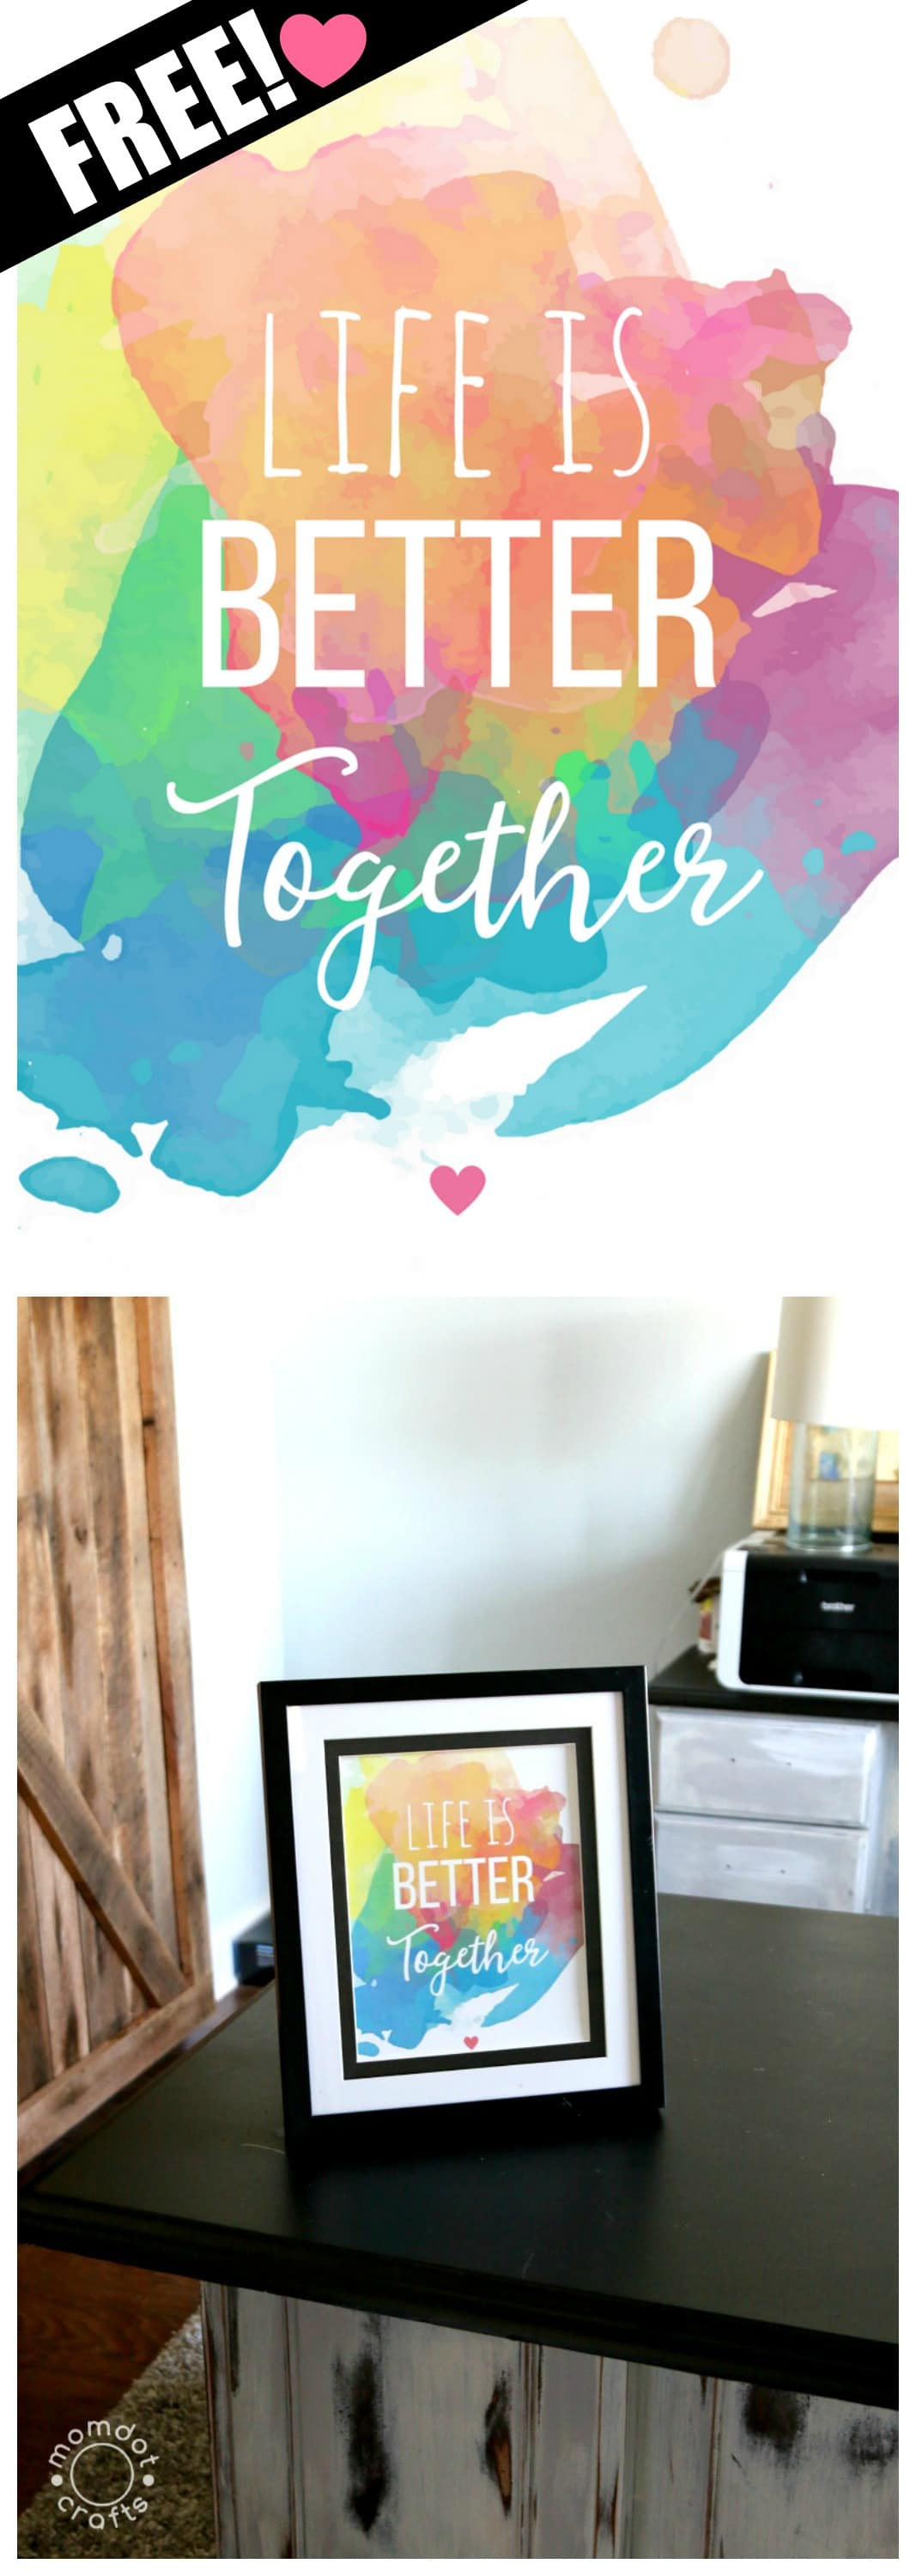 Free Printable for the Home : Water color quote decor LIFE IS BETTER TOGETHER, , just print and frame, perfect for an office or bedroom 8x10